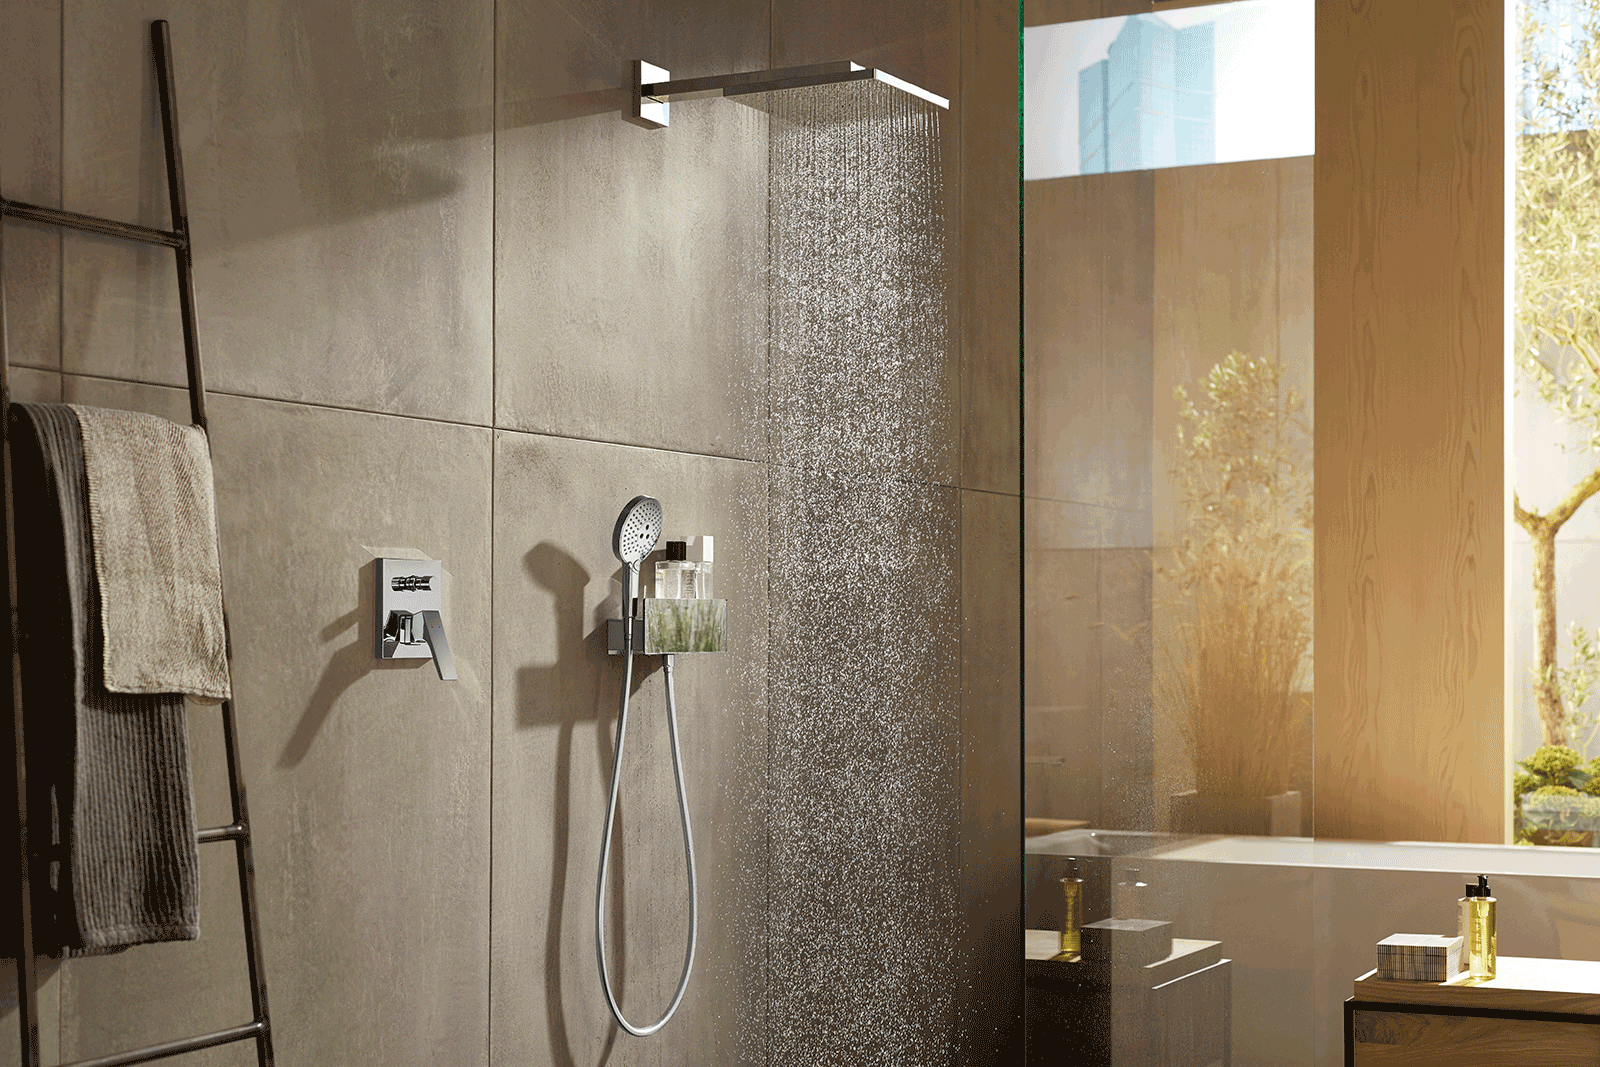 hansgrohe-shower